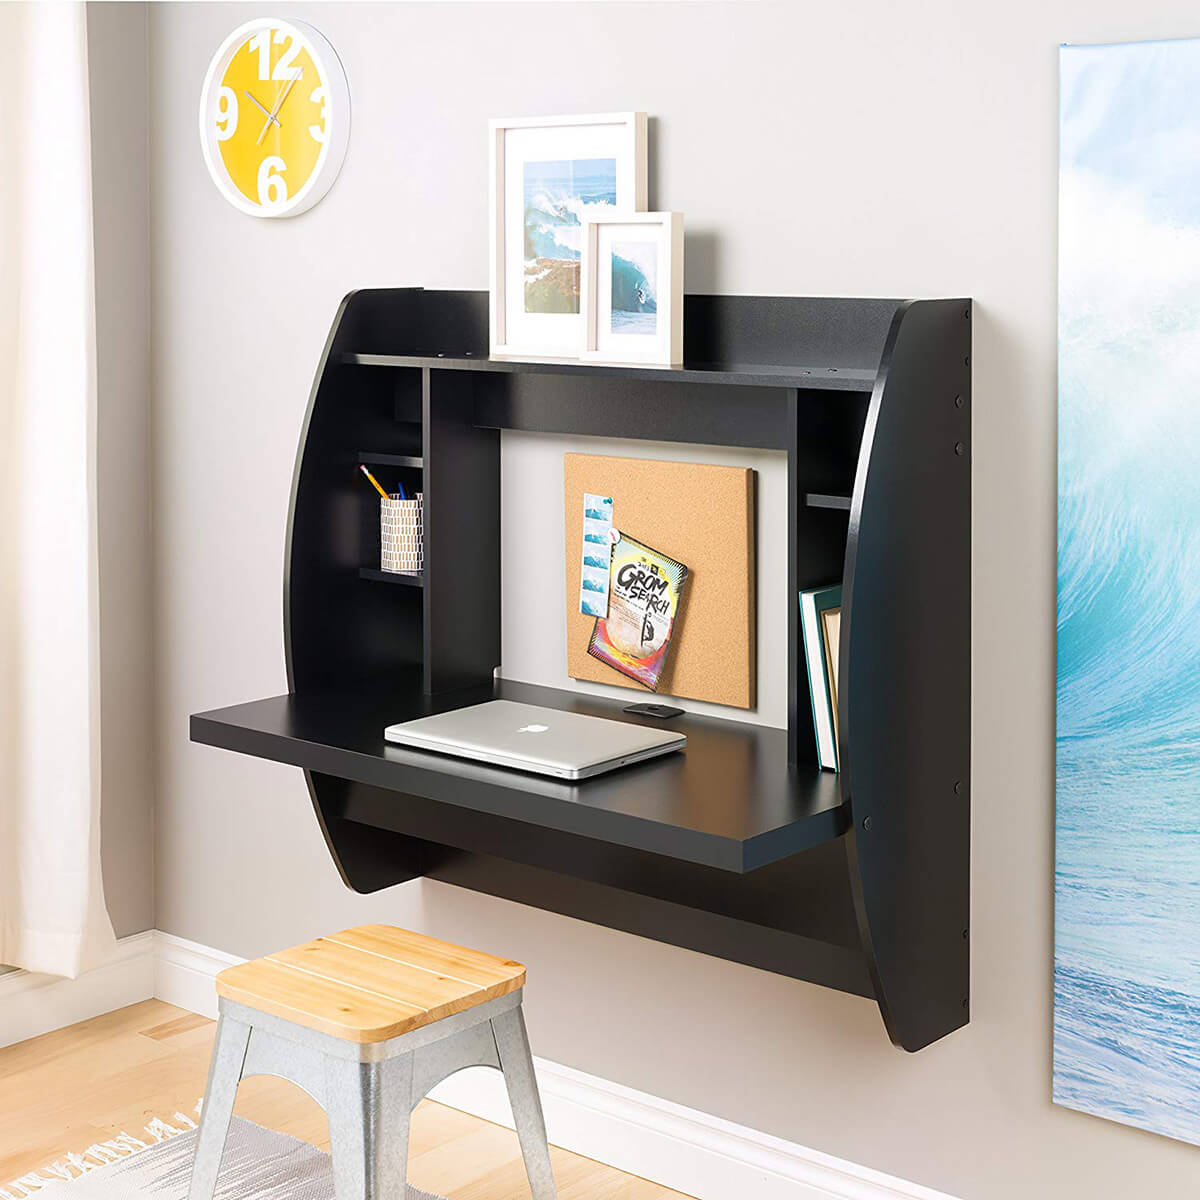 Black Student Style Wall Desk Idea